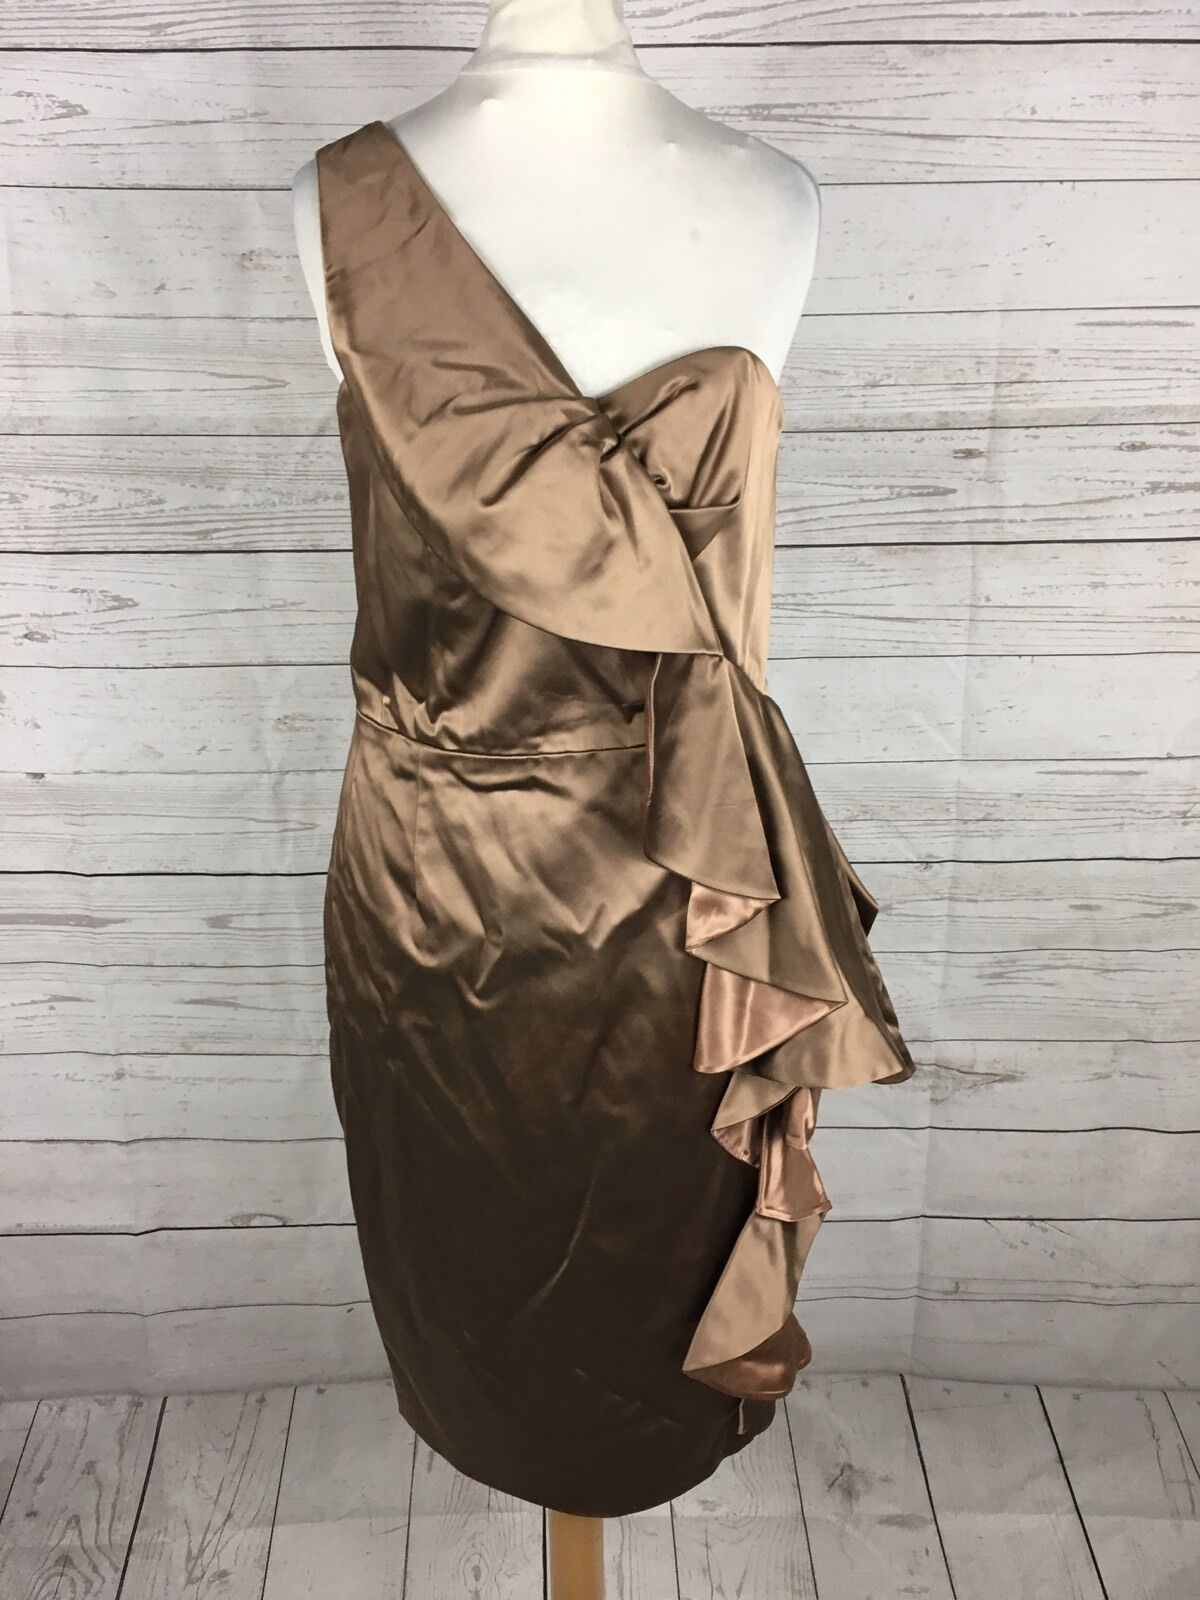 Women's Coast Party Prom Dress - Size UK6 - Brown  - Great Condition